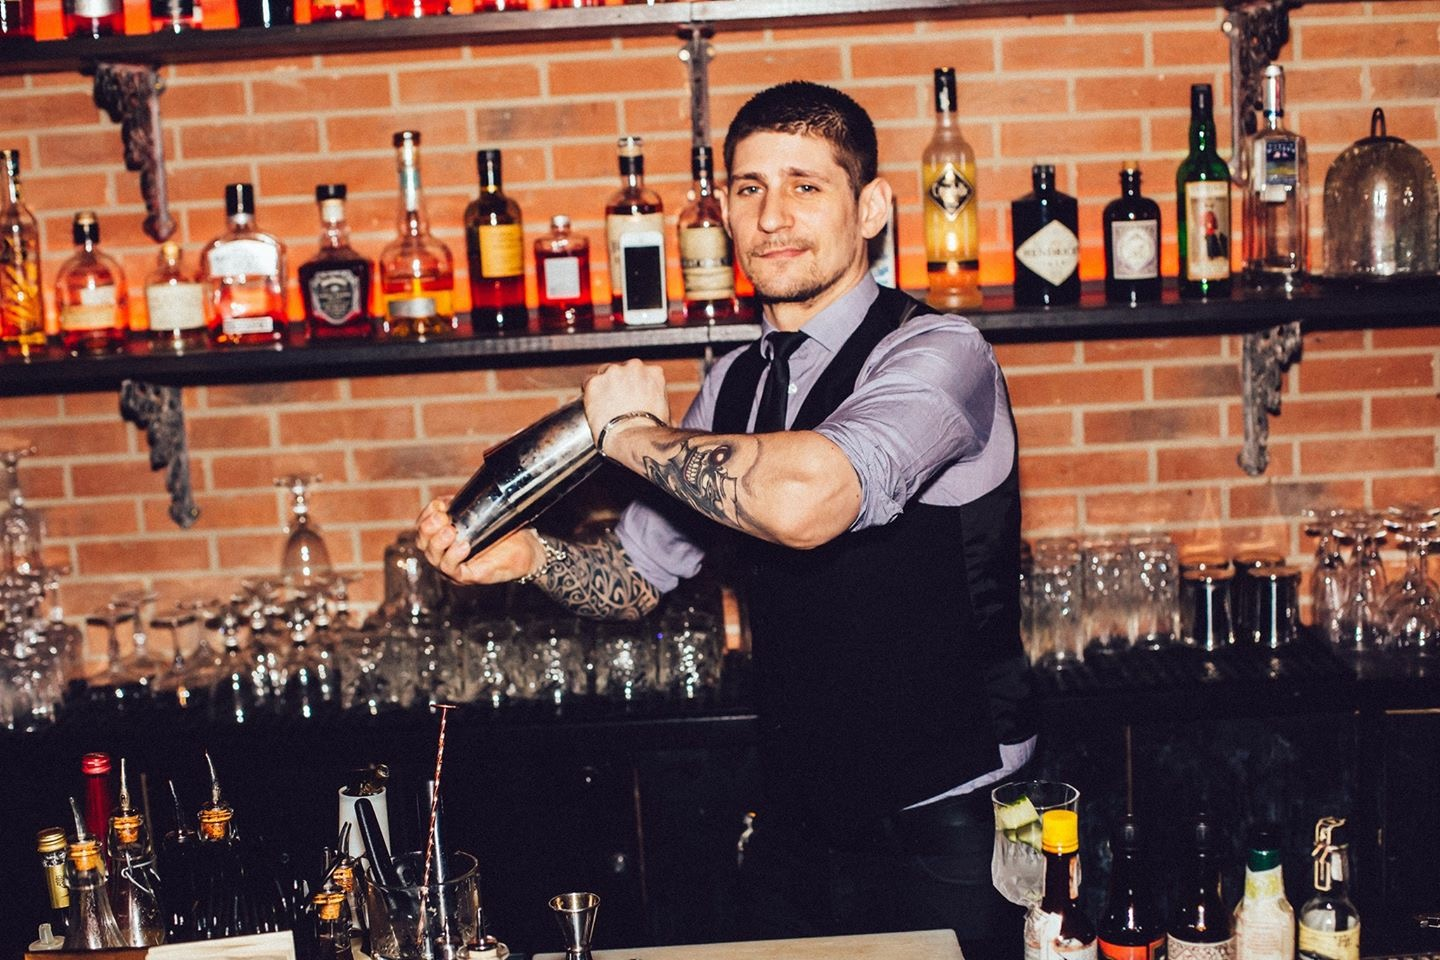 Bartenders at work by Infosbar : le CV express de Mark Bourguet